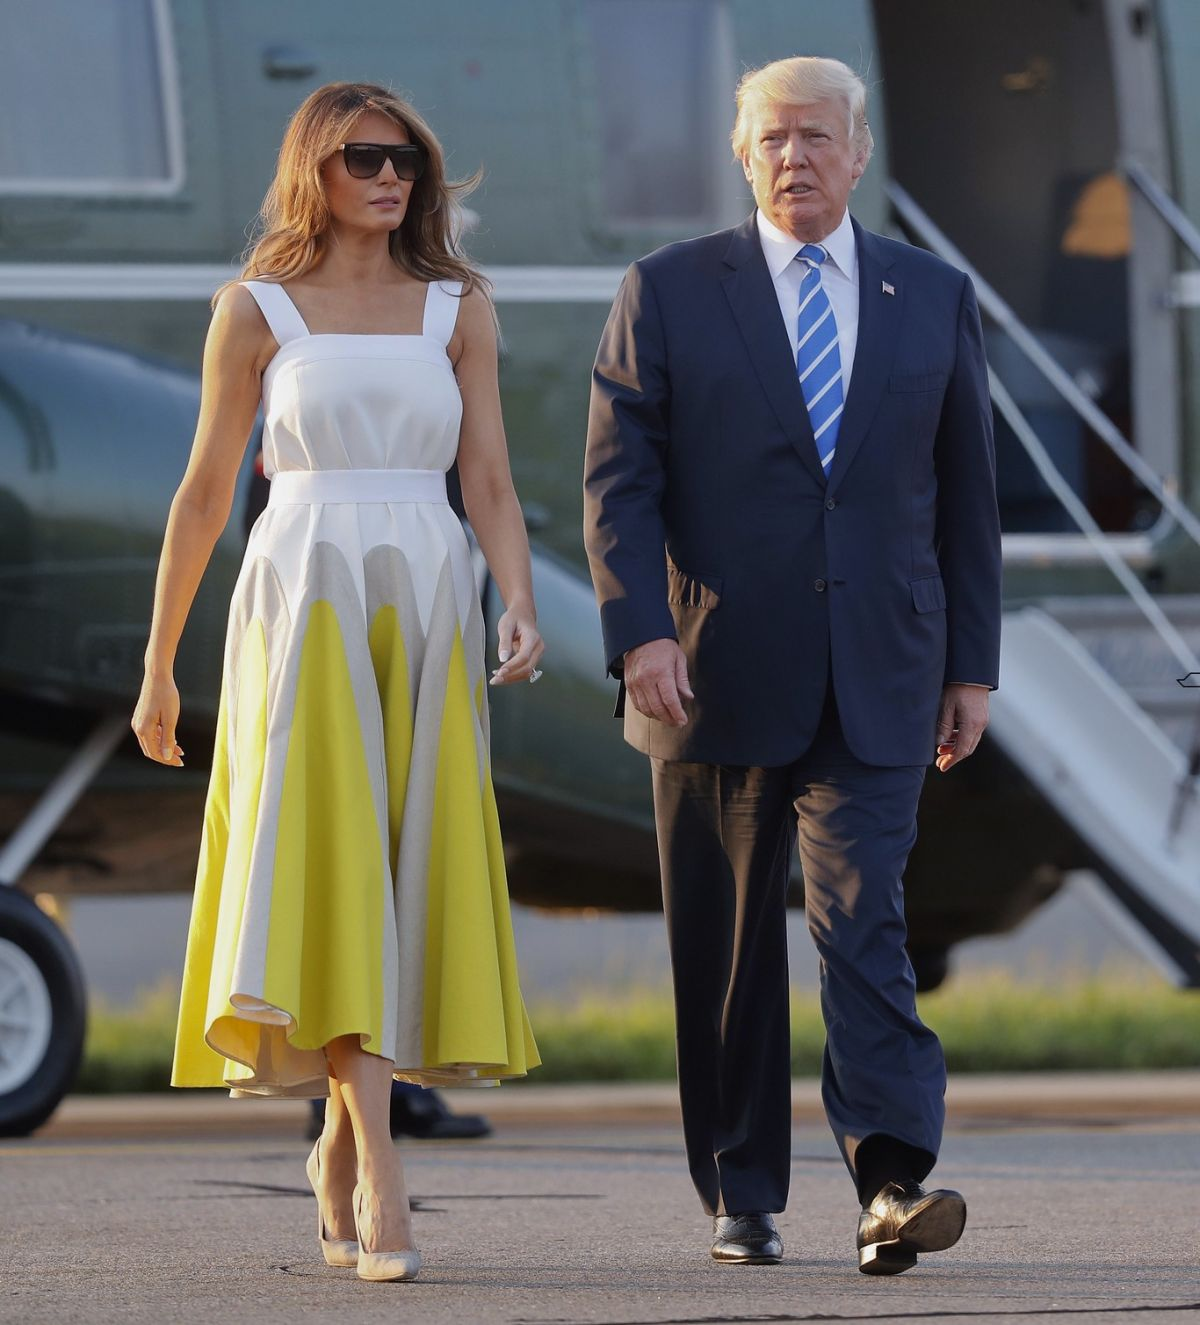 MELANIA TRUMP Arrives Back at White House in Washington D.C. 08/20/2017